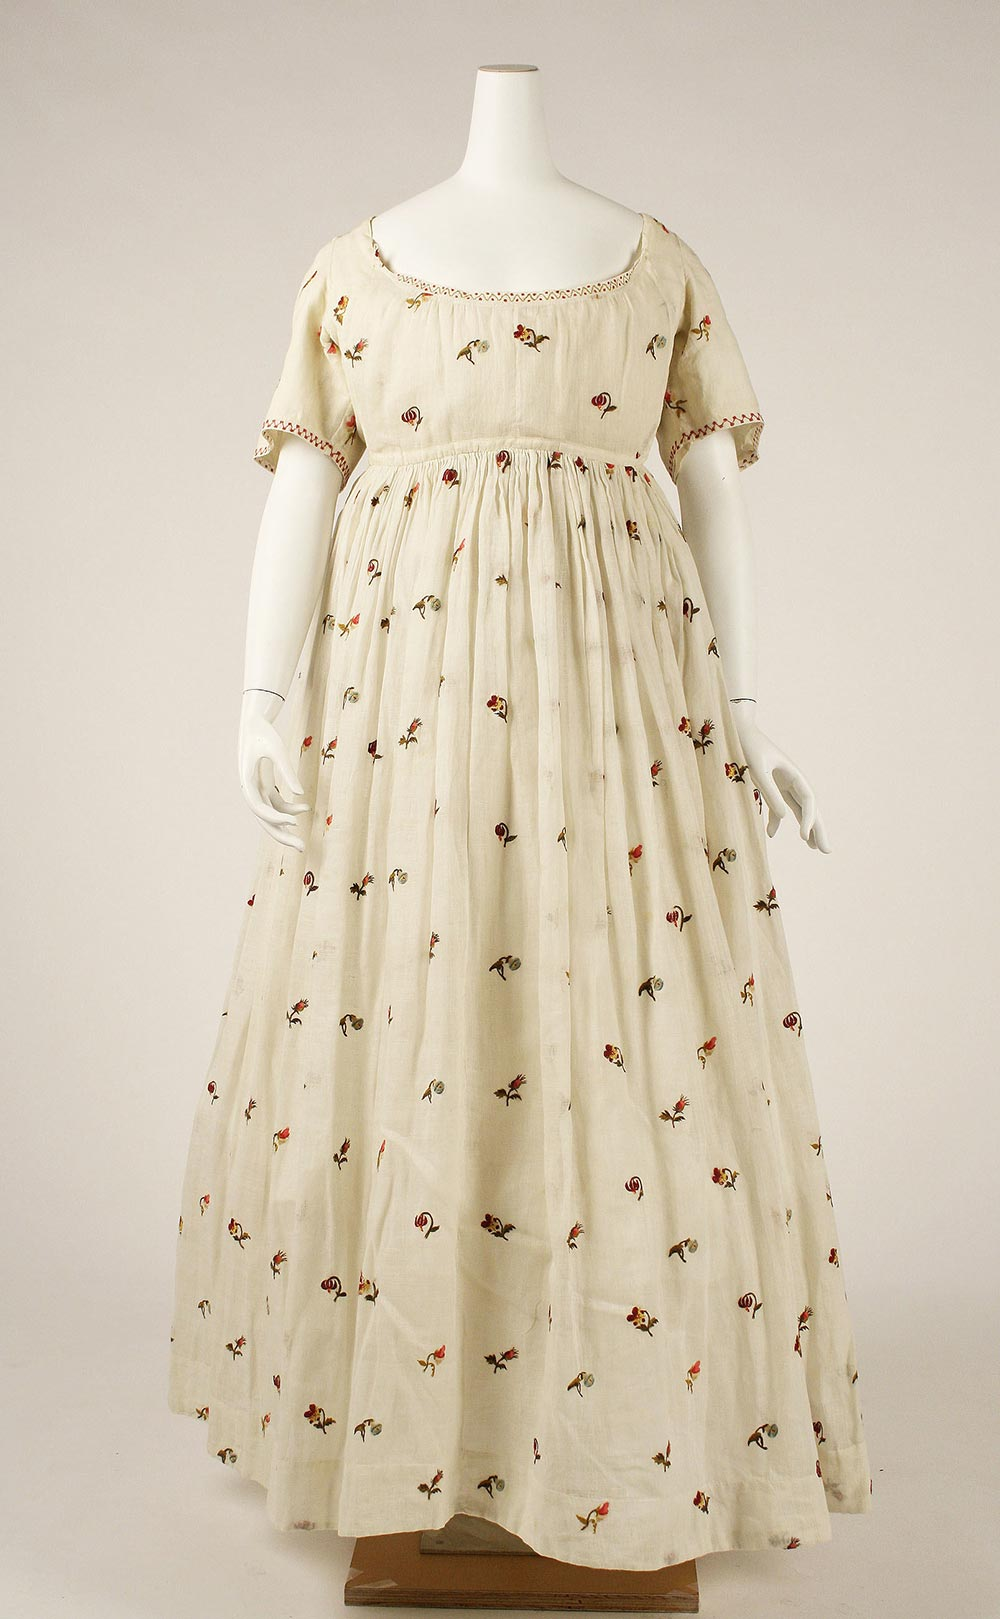 Early Regency 1796-1798 Floral Embroidered Cotton Gown – Adored Vintage